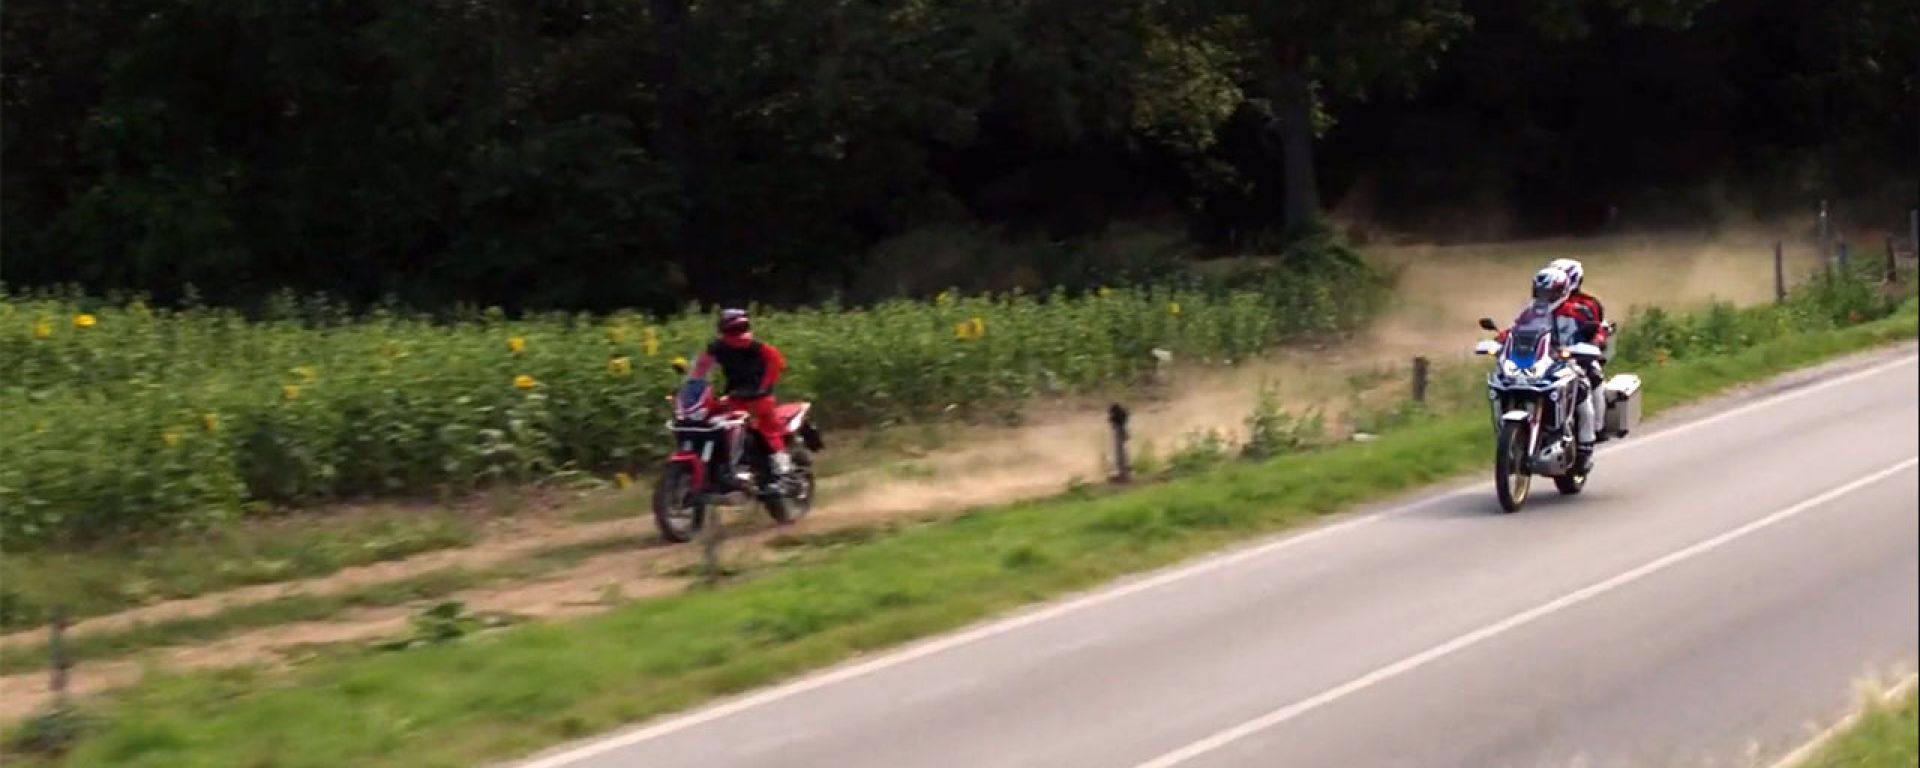 Le due anime della Honda Africa Twin 1100 in un video